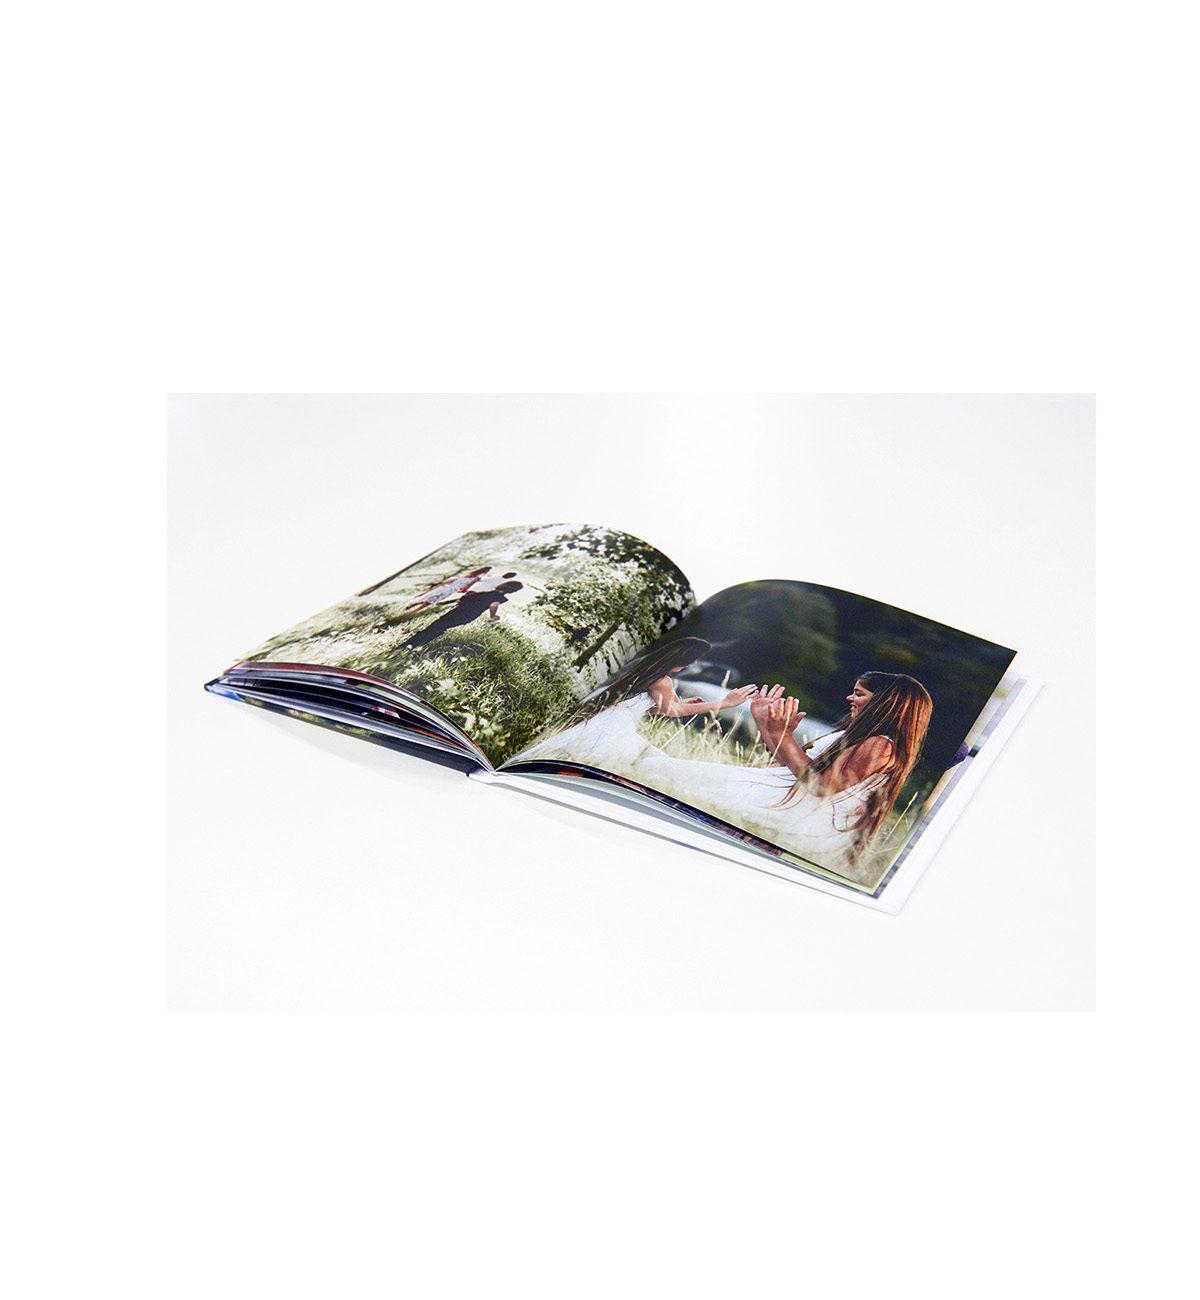 Open softcover photo book